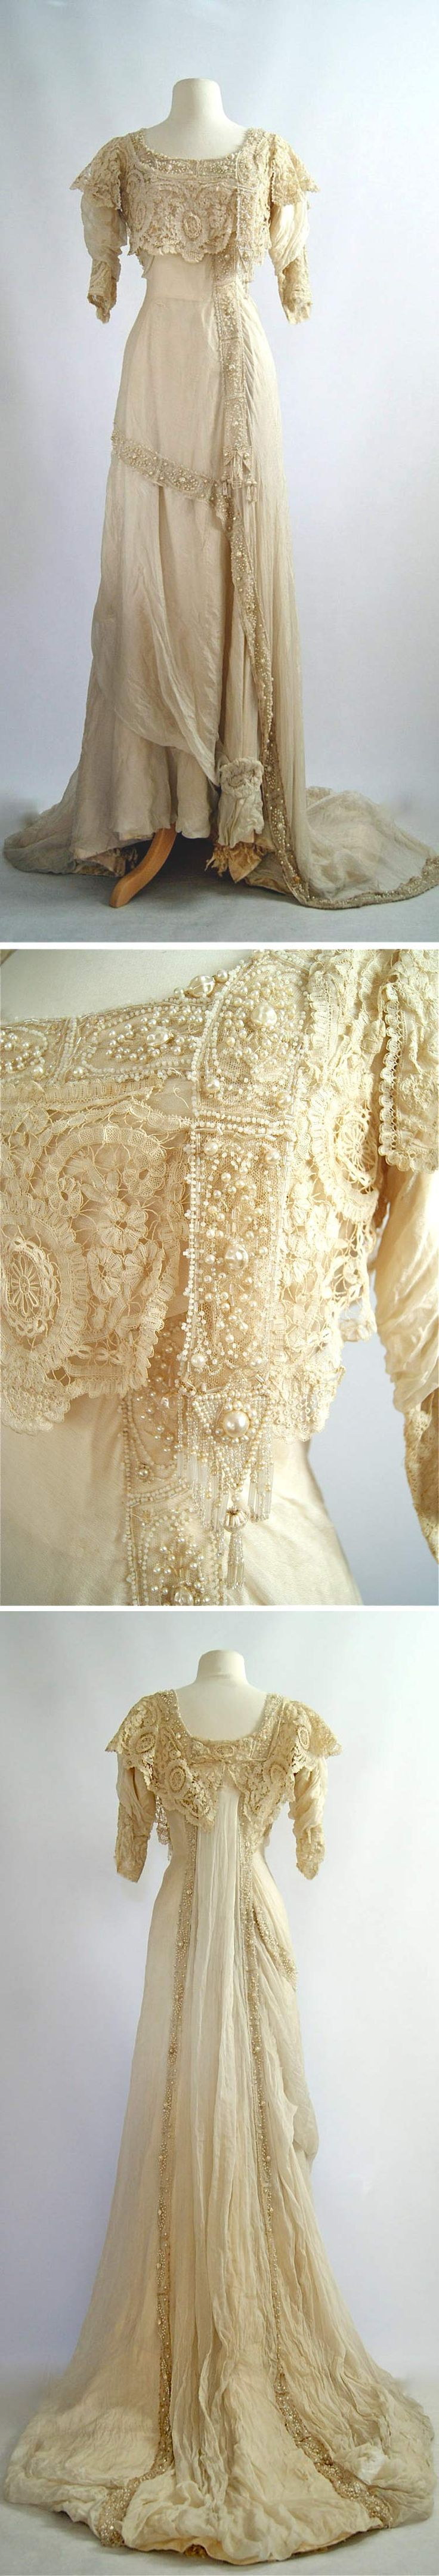 "Evening gown ca. 1900s. Silk. Scoop neck trimmed with lace & beading around collar. Lace cascades down left side. Beading down left side & across lower waistline that leads to 2 panels in back with detailed beading. Front is 24"" higher than back. Sleeves are 3/4 length & slightly gathered with lace at cuffs. Boned bodice plus built-in corset that has hook & eyes in back. Dress closes with many hook & eyes in back. xtabayvintage/etsy"